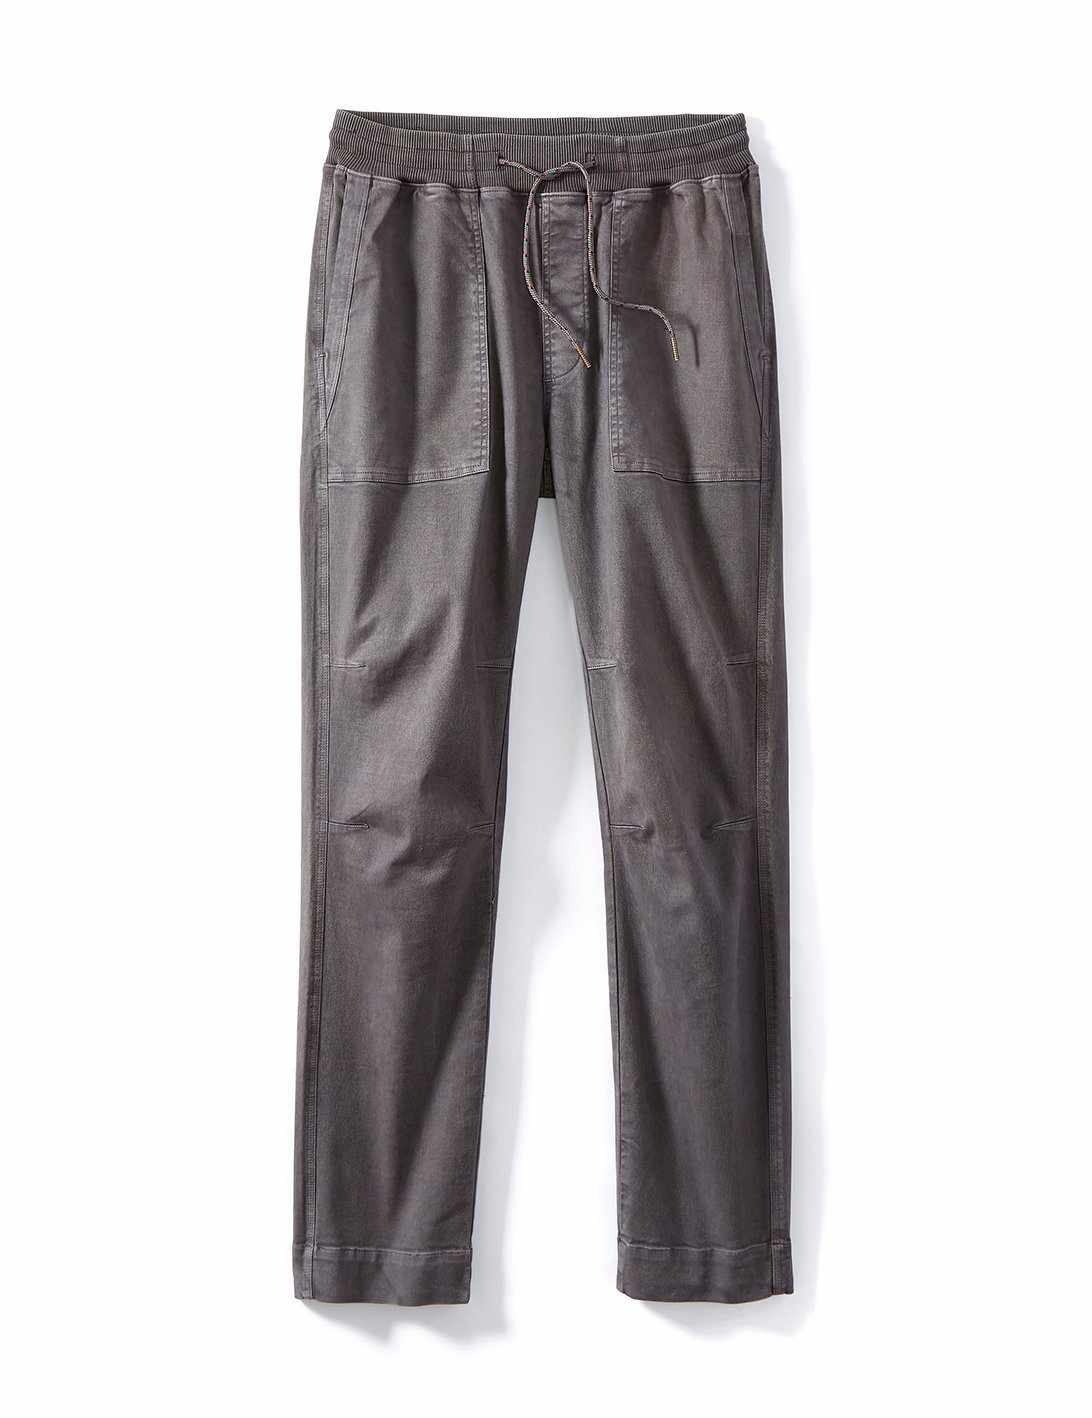 Faherty Brand Traveler Pants